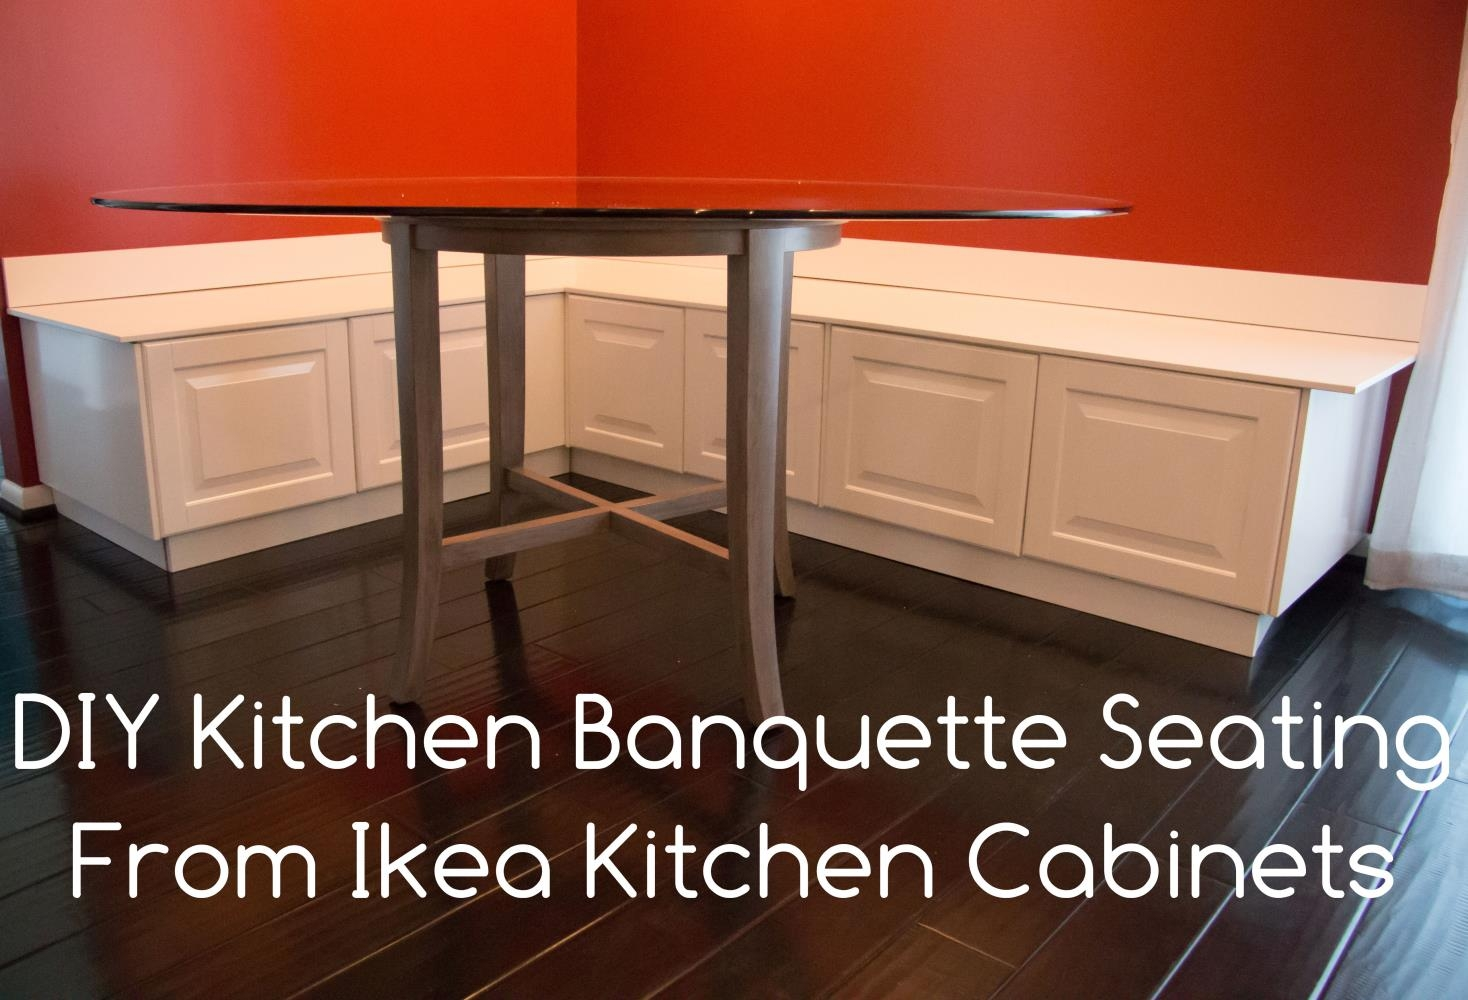 diy kitchen banquette bench using ikea cabinets ikea hacks. Black Bedroom Furniture Sets. Home Design Ideas